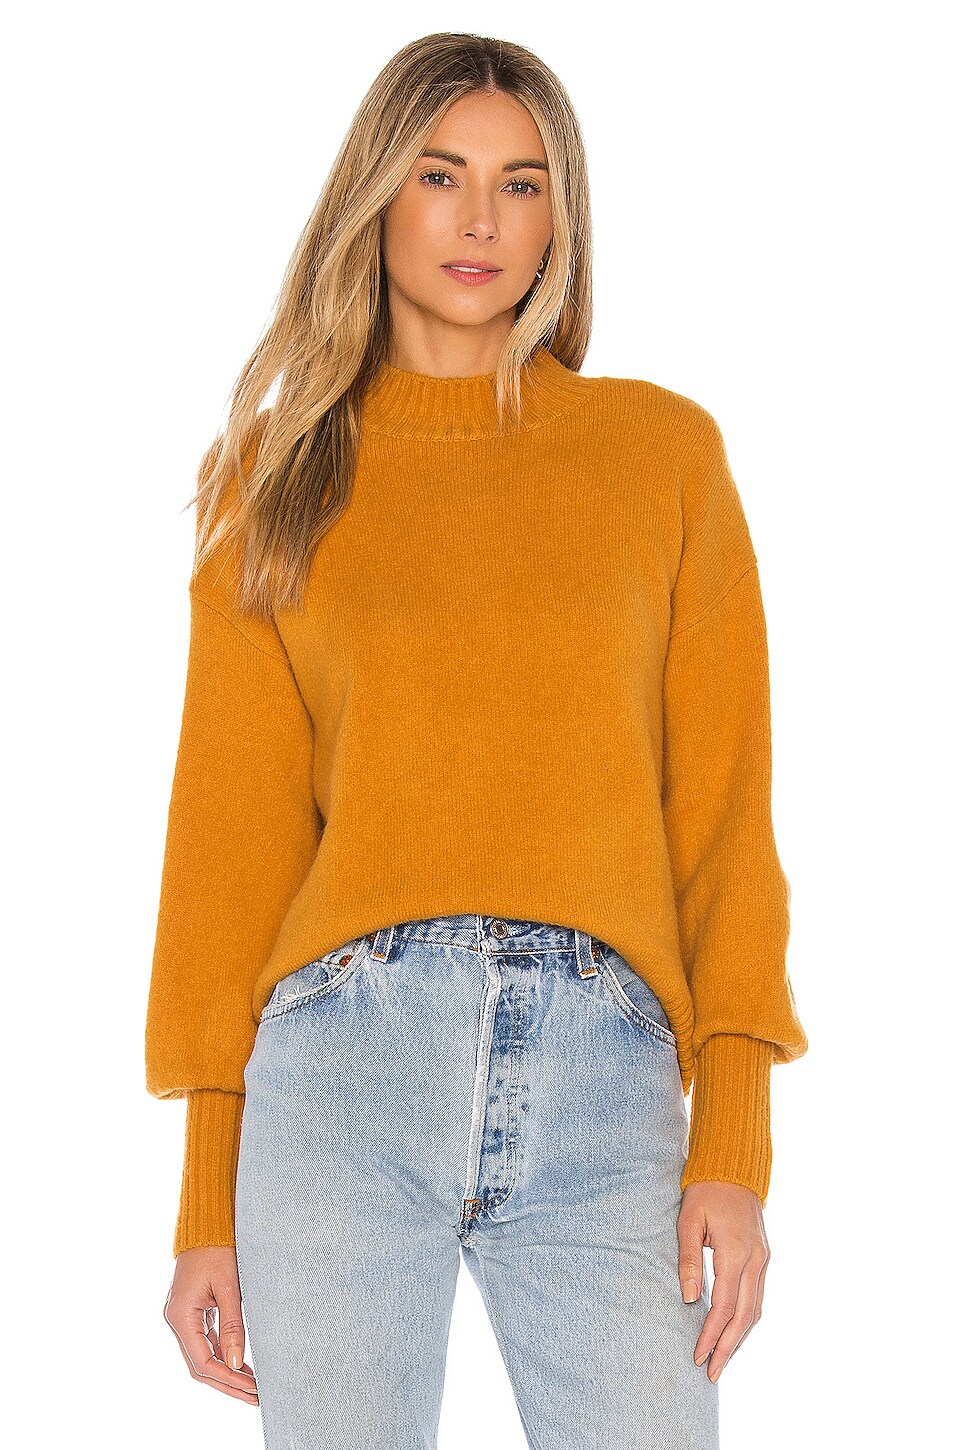 Lovers + Friends Esma Sweater in Yellow